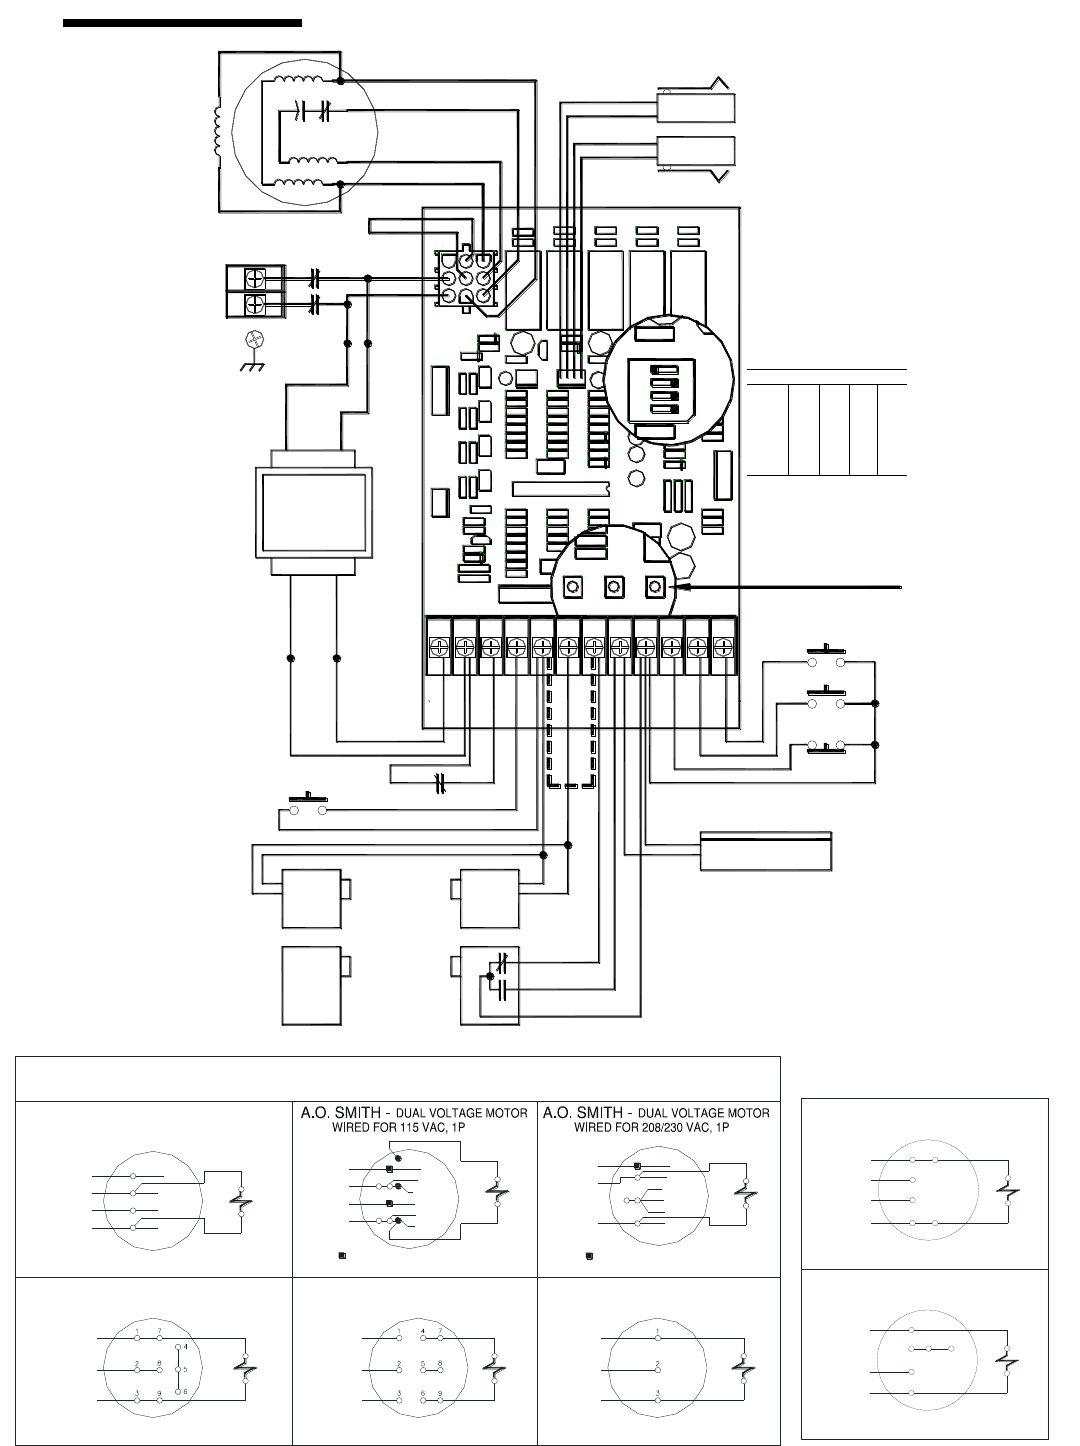 9028f597 4ae9 412f a06d e76d1de71b42 bg16 page 22 of linear garage door opener j s user guide garage door opener wiring schematic at gsmx.co